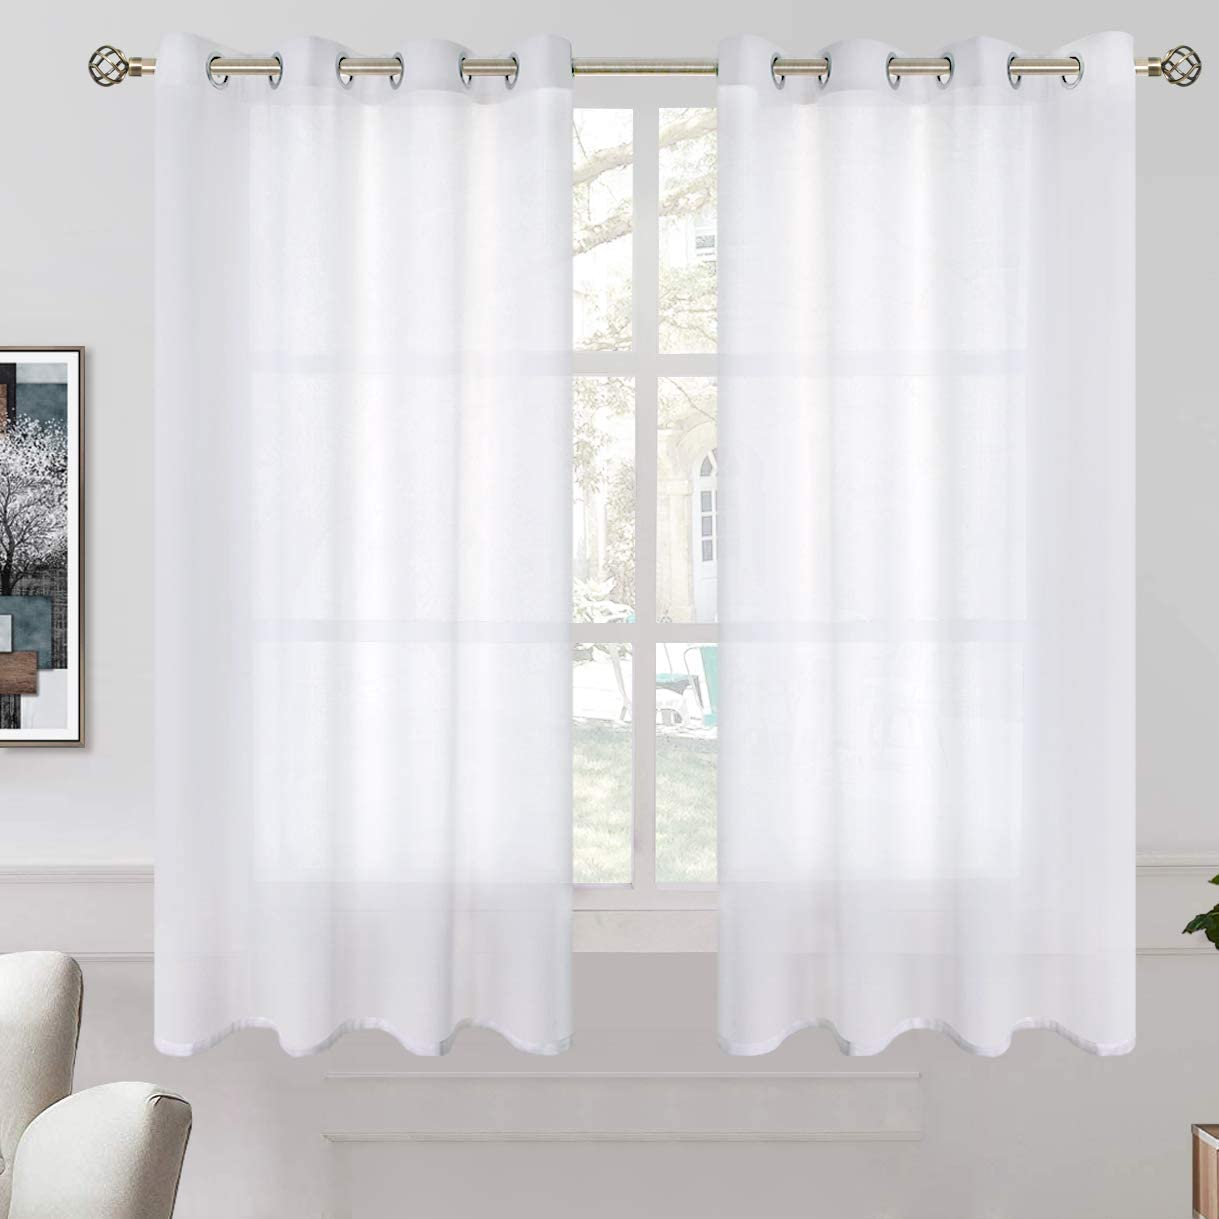 Amazon Com Bgment Linen Look Semi Sheer Curtains For Bedroom Grommet Light Filtering Casual Textured Privacy Curtains For Living Room 2 Panels Each 52 X 63 Inch White Home Kitchen